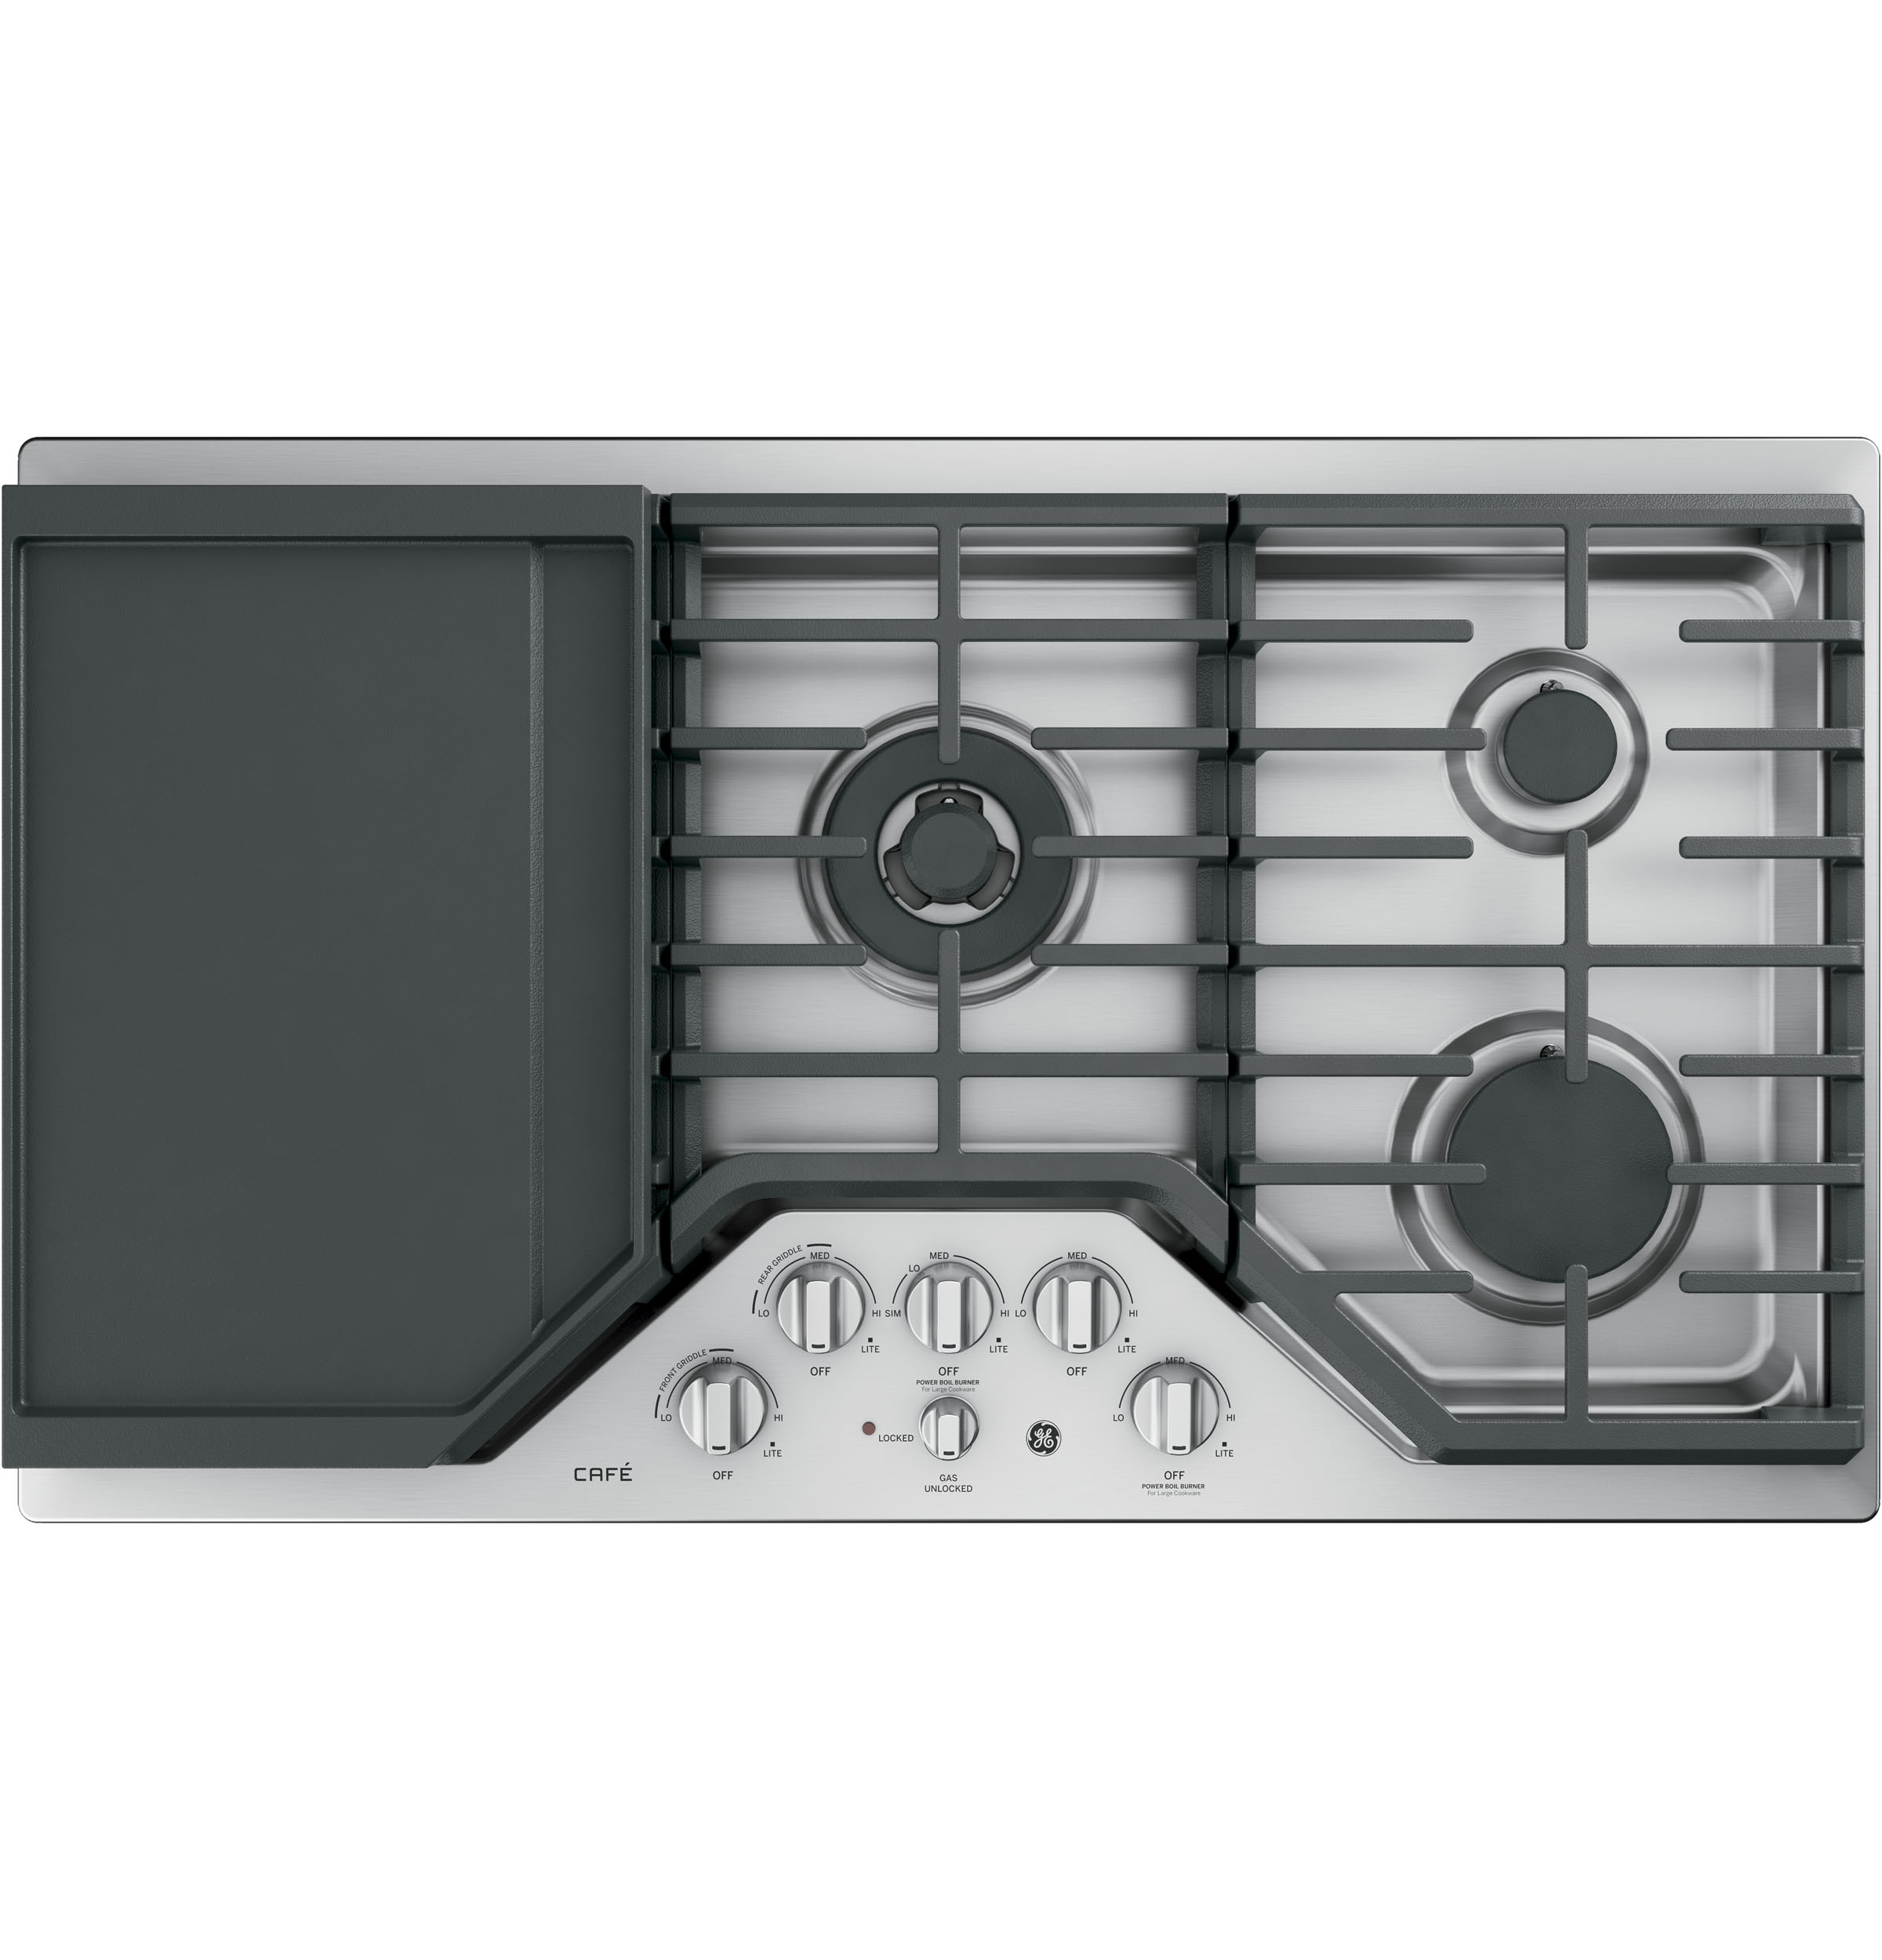 Ge Caf 233 Series 36 Quot Built In Gas Cooktop Cgp9536slss